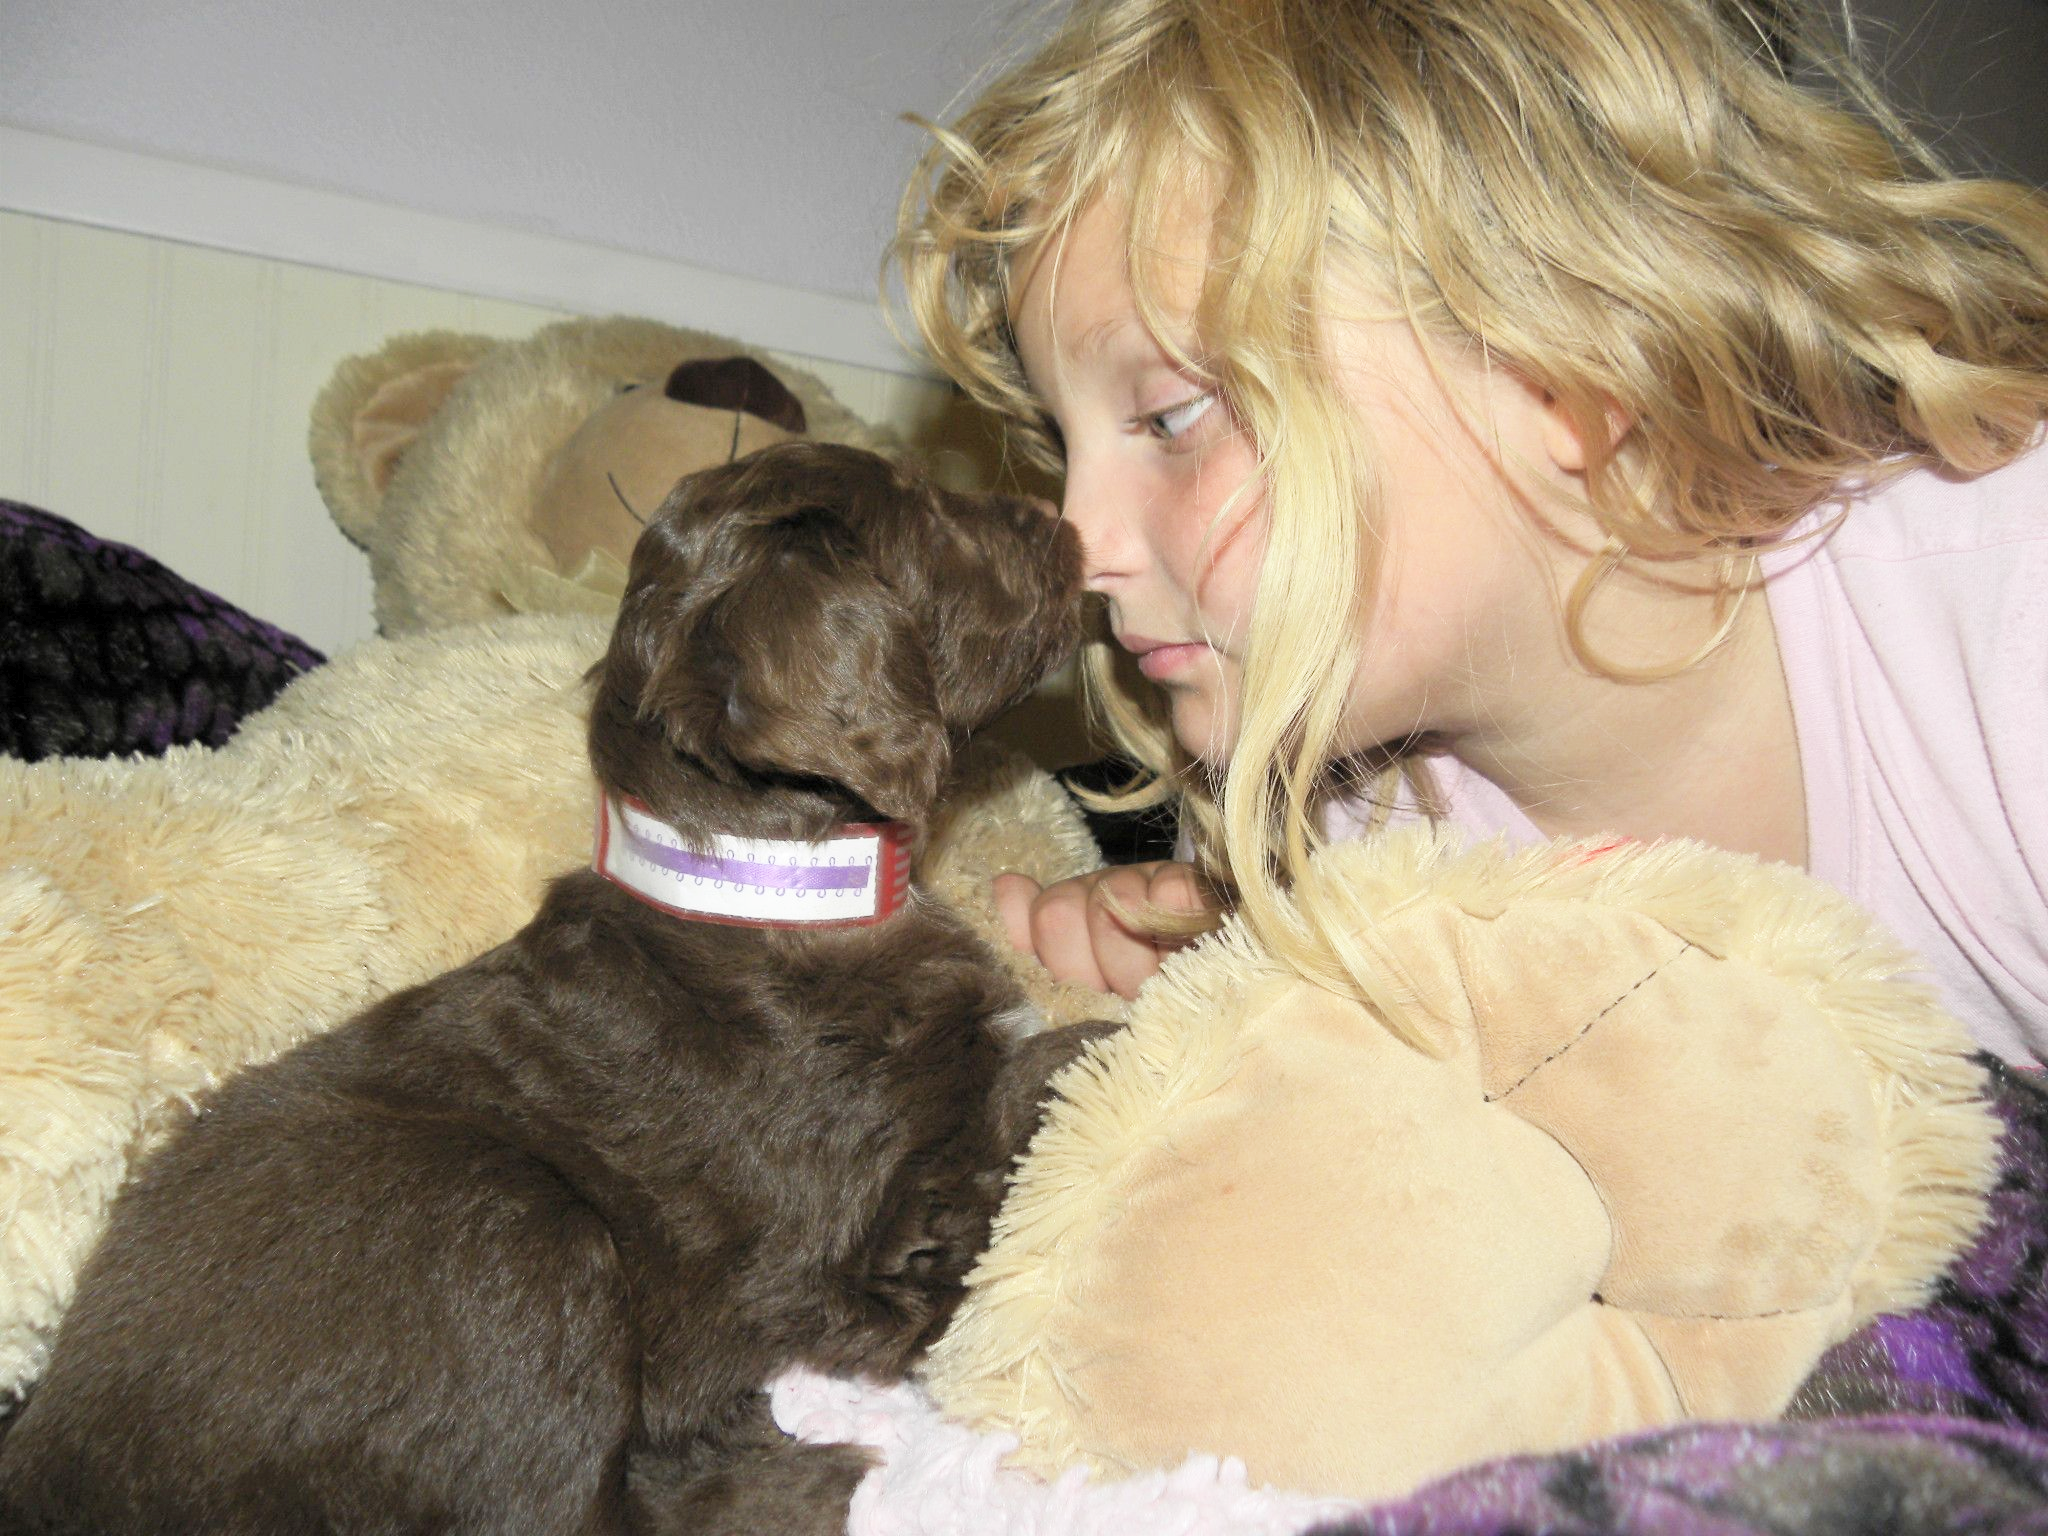 Bonding with and engaging your new puppy - getting down to eye level with your puppy - Mini Chocolate Aussiedoodle Puppy!